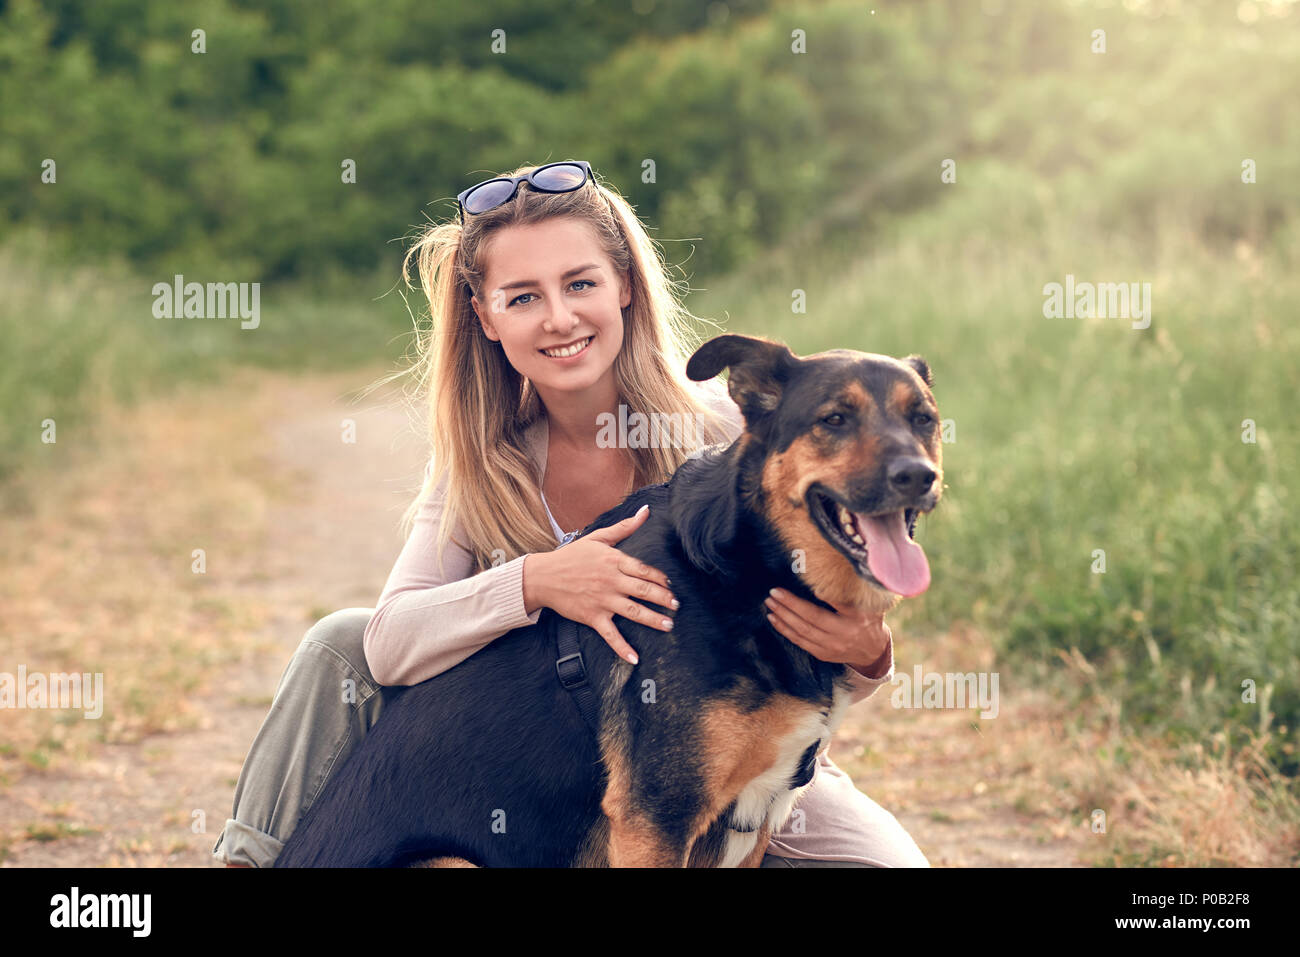 Happy smiling black dog wearing a walking harness sitting facing its pretty young woman owner who is caressing it with a loving smile outdoors in coun - Stock Image